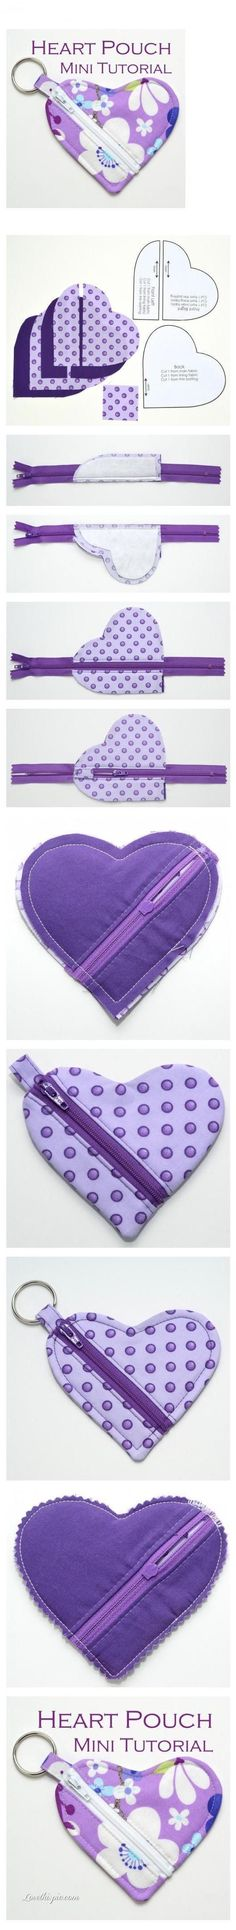 DIY Heart Pouch Mini Tutorial diy crafts home made easy crafts craft idea crafts ideas diy ideas diy crafts diy idea do it yourself diy projects diy craft handmade diy handbag craft handbag